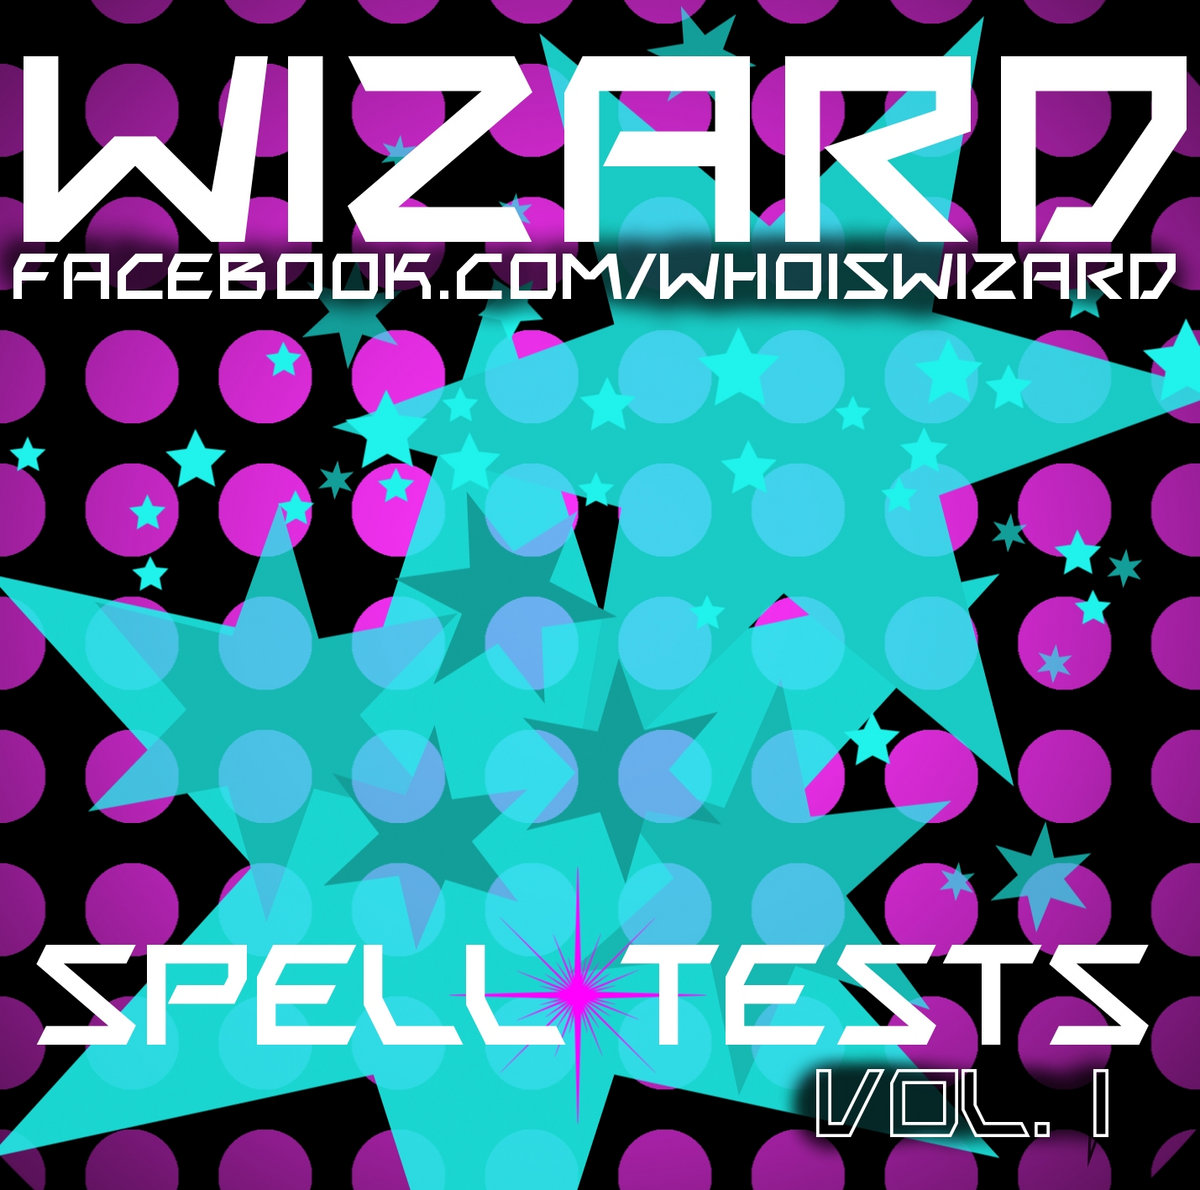 Spell Tests vol. 1 by w i Z a r d